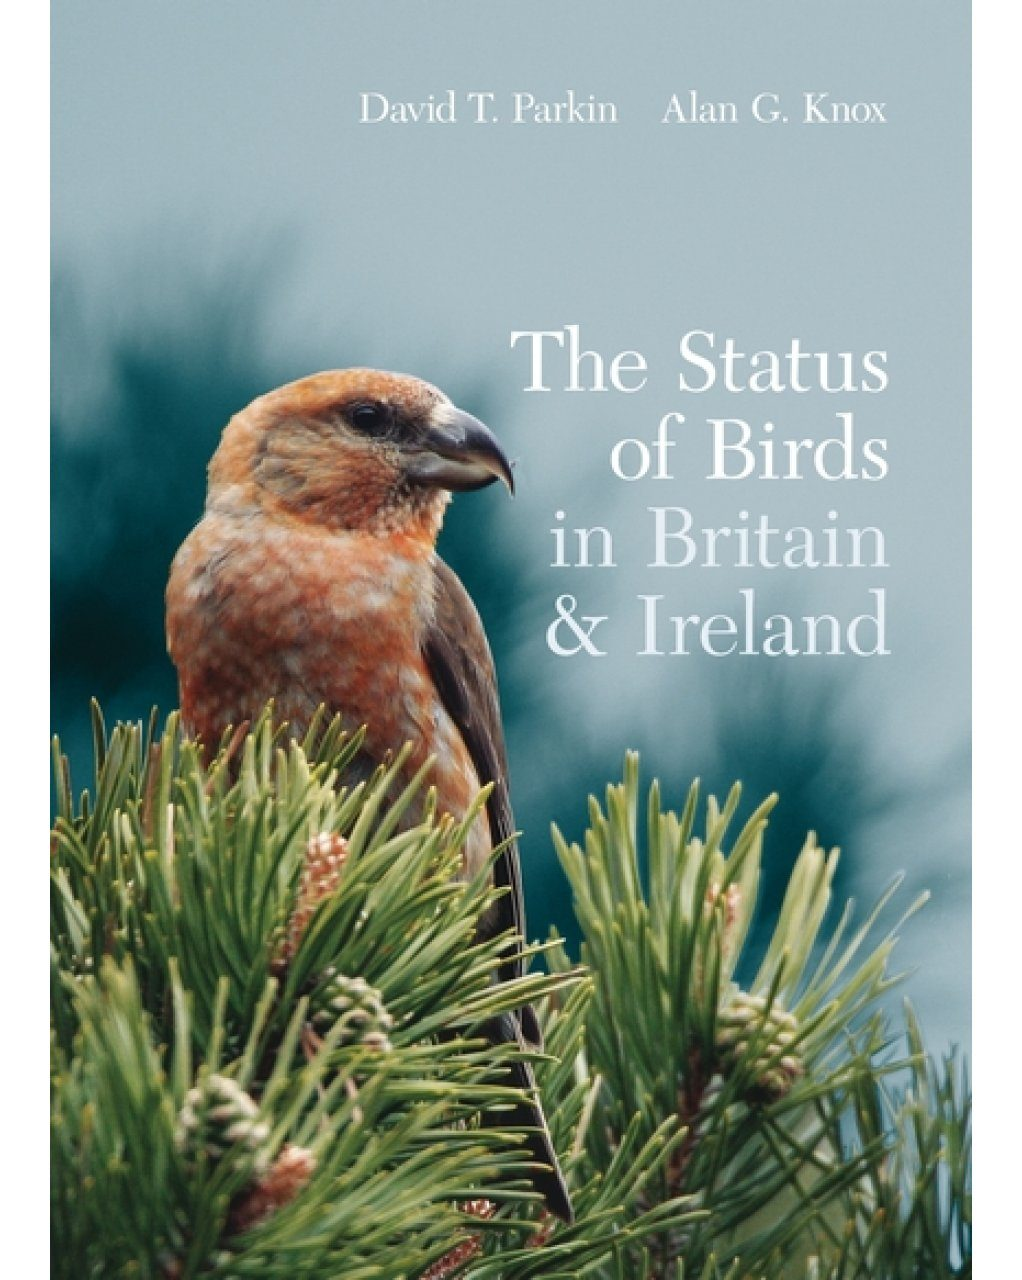 The Status of Birds in Britain and Ireland